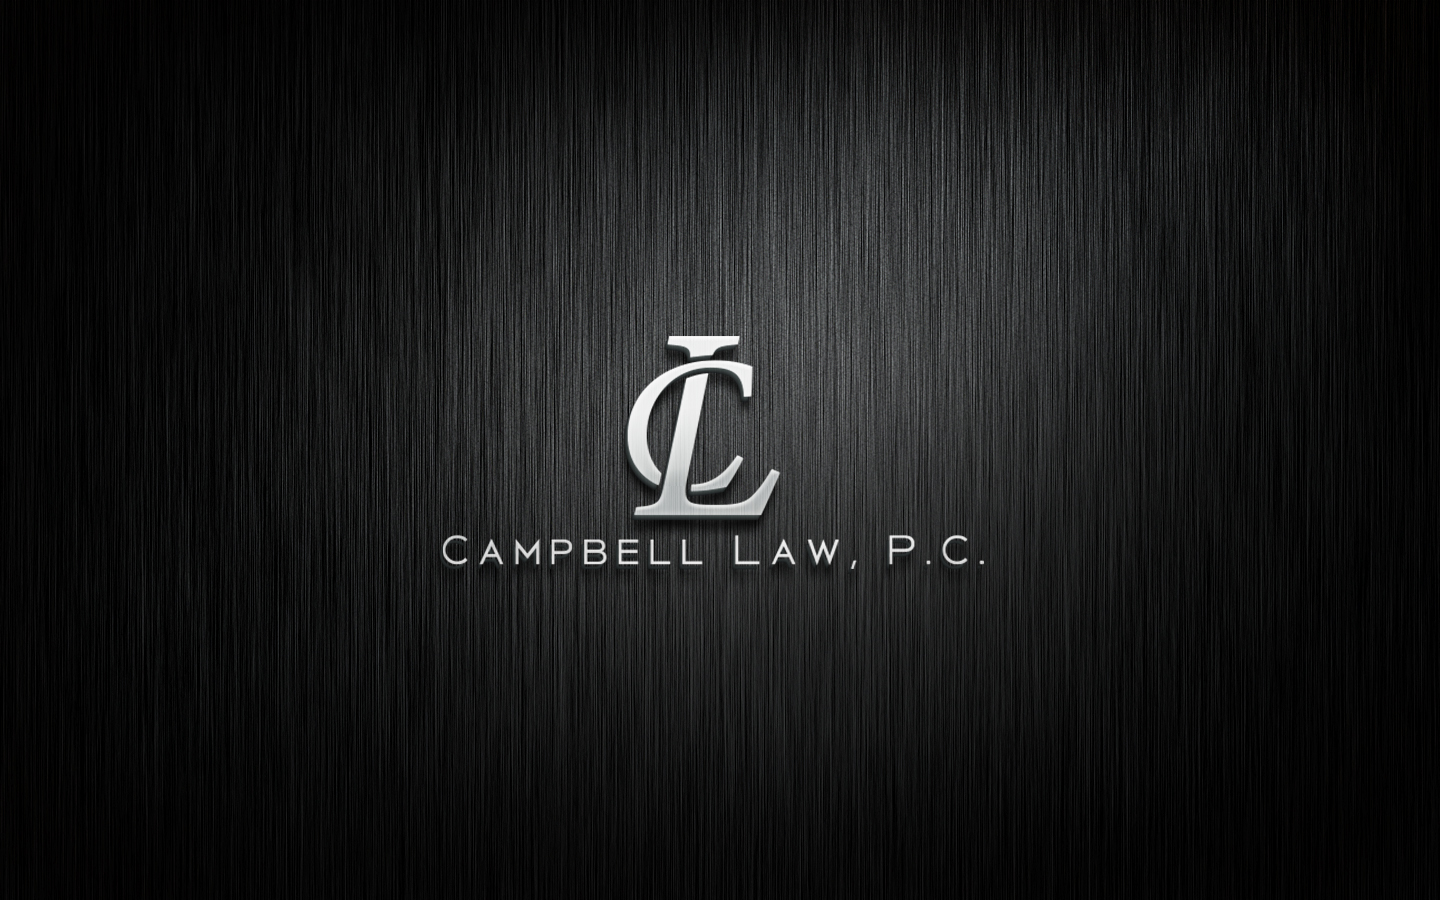 Campbell Law, P.C.